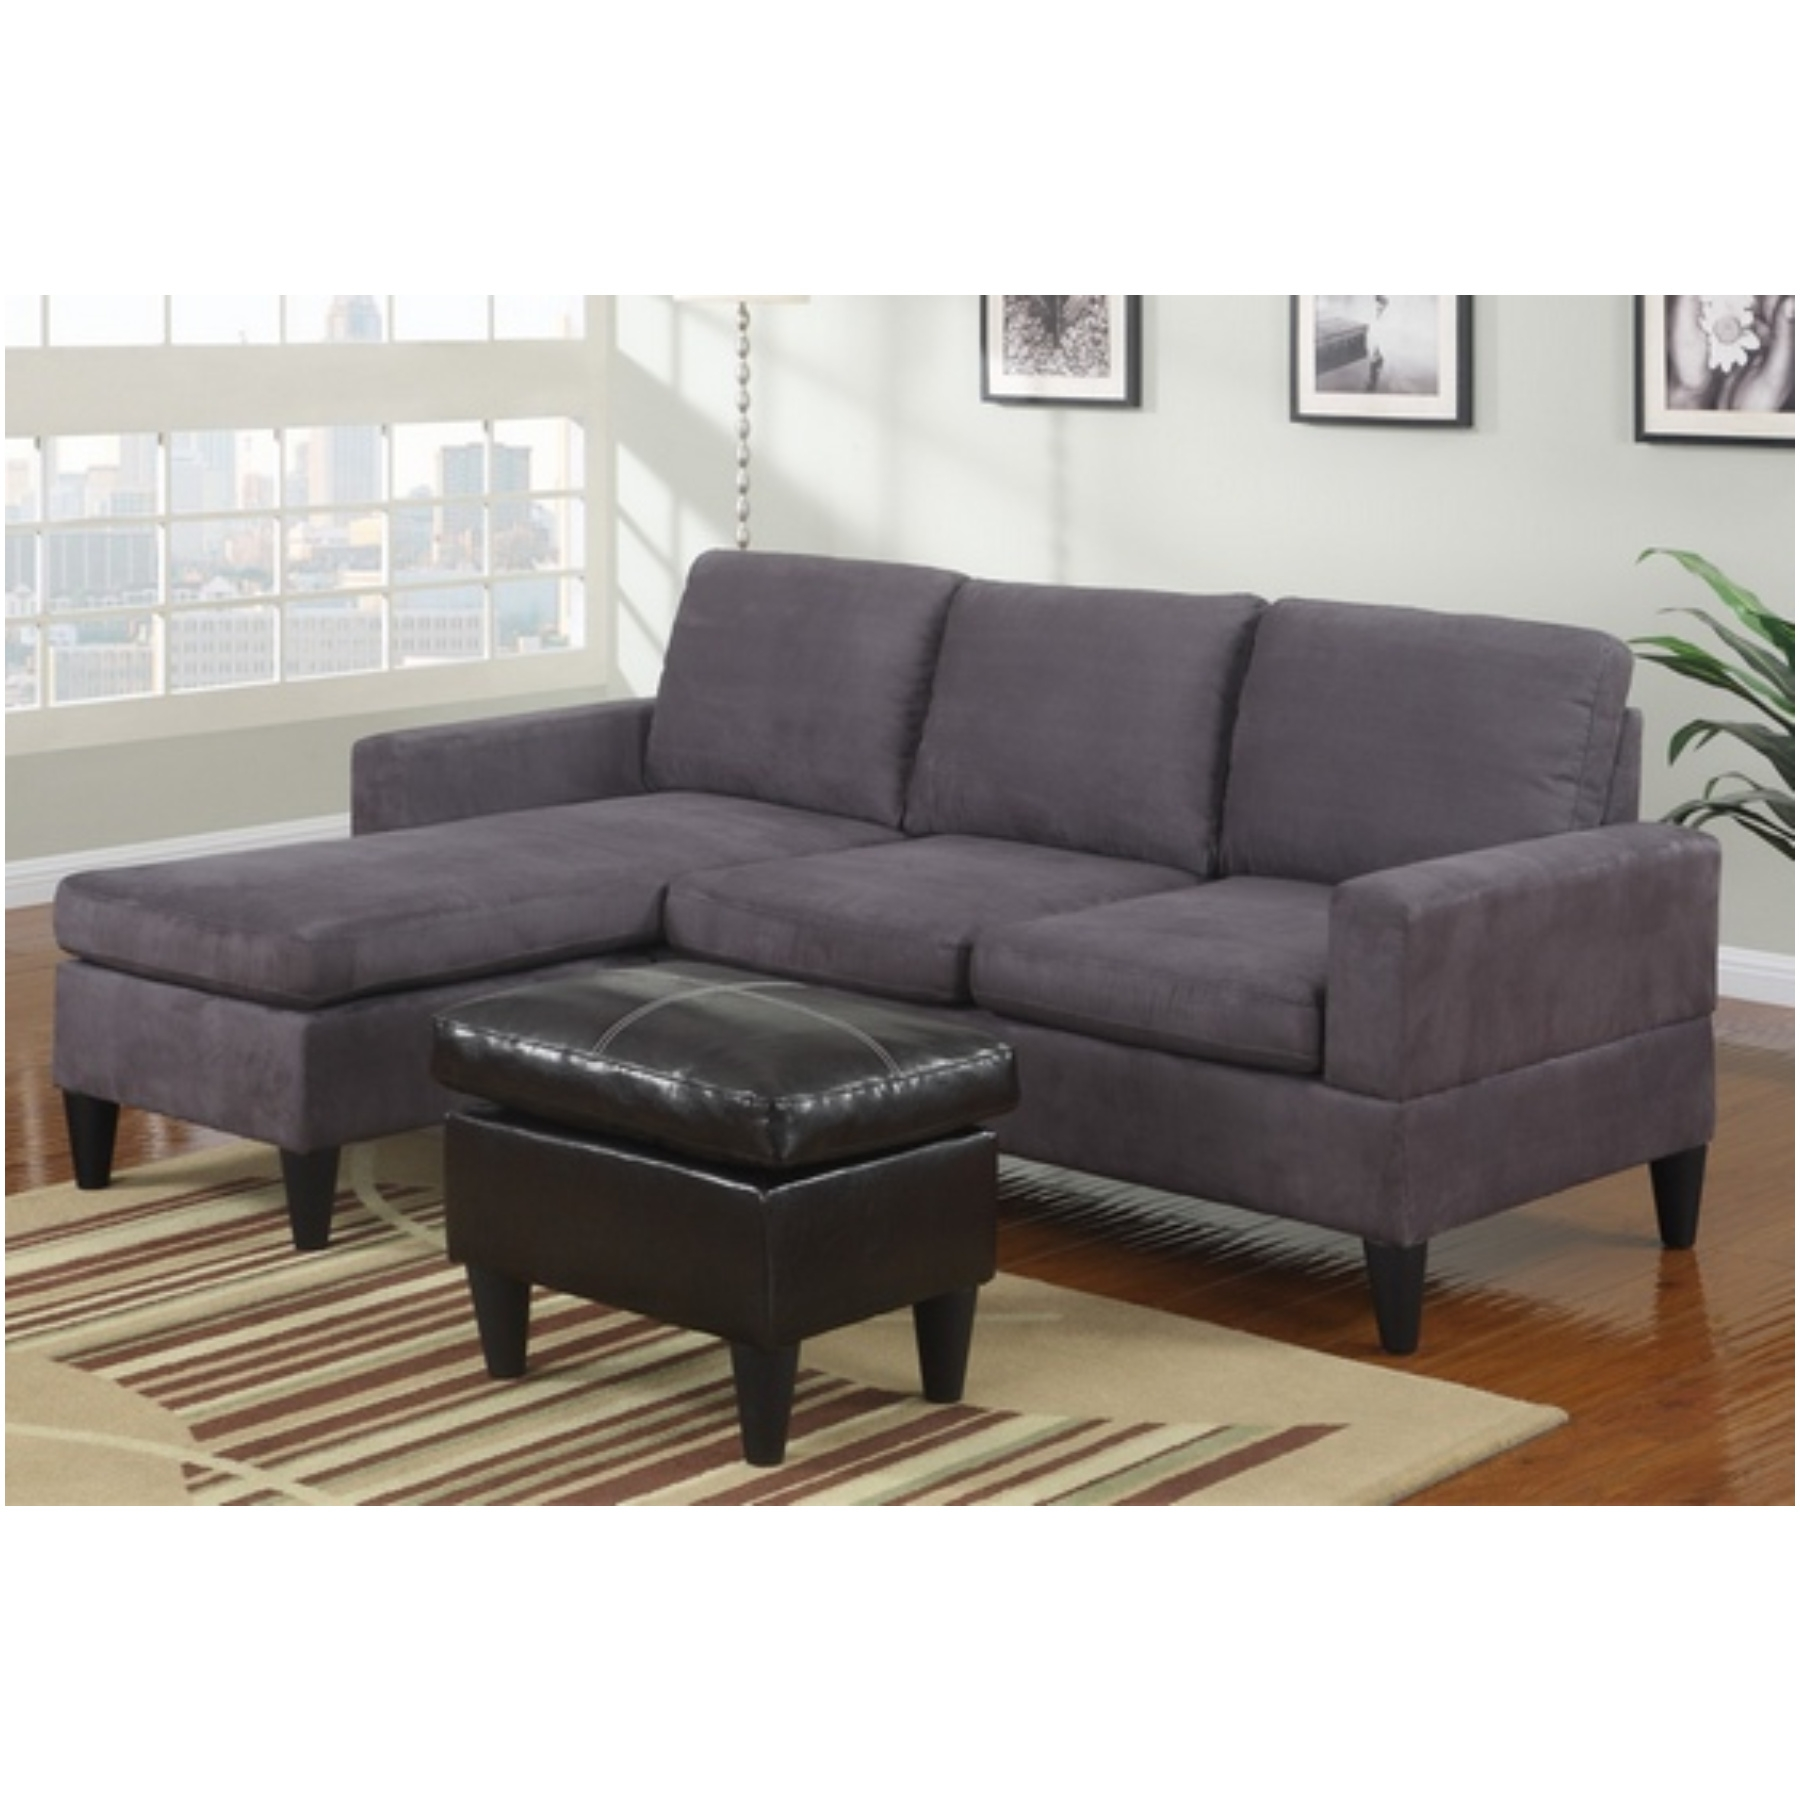 Apartment Sized Furniture Nyc Full Size Of Living Roomawesome With Apartment Sectional Sofa With Chaise (#2 of 12)